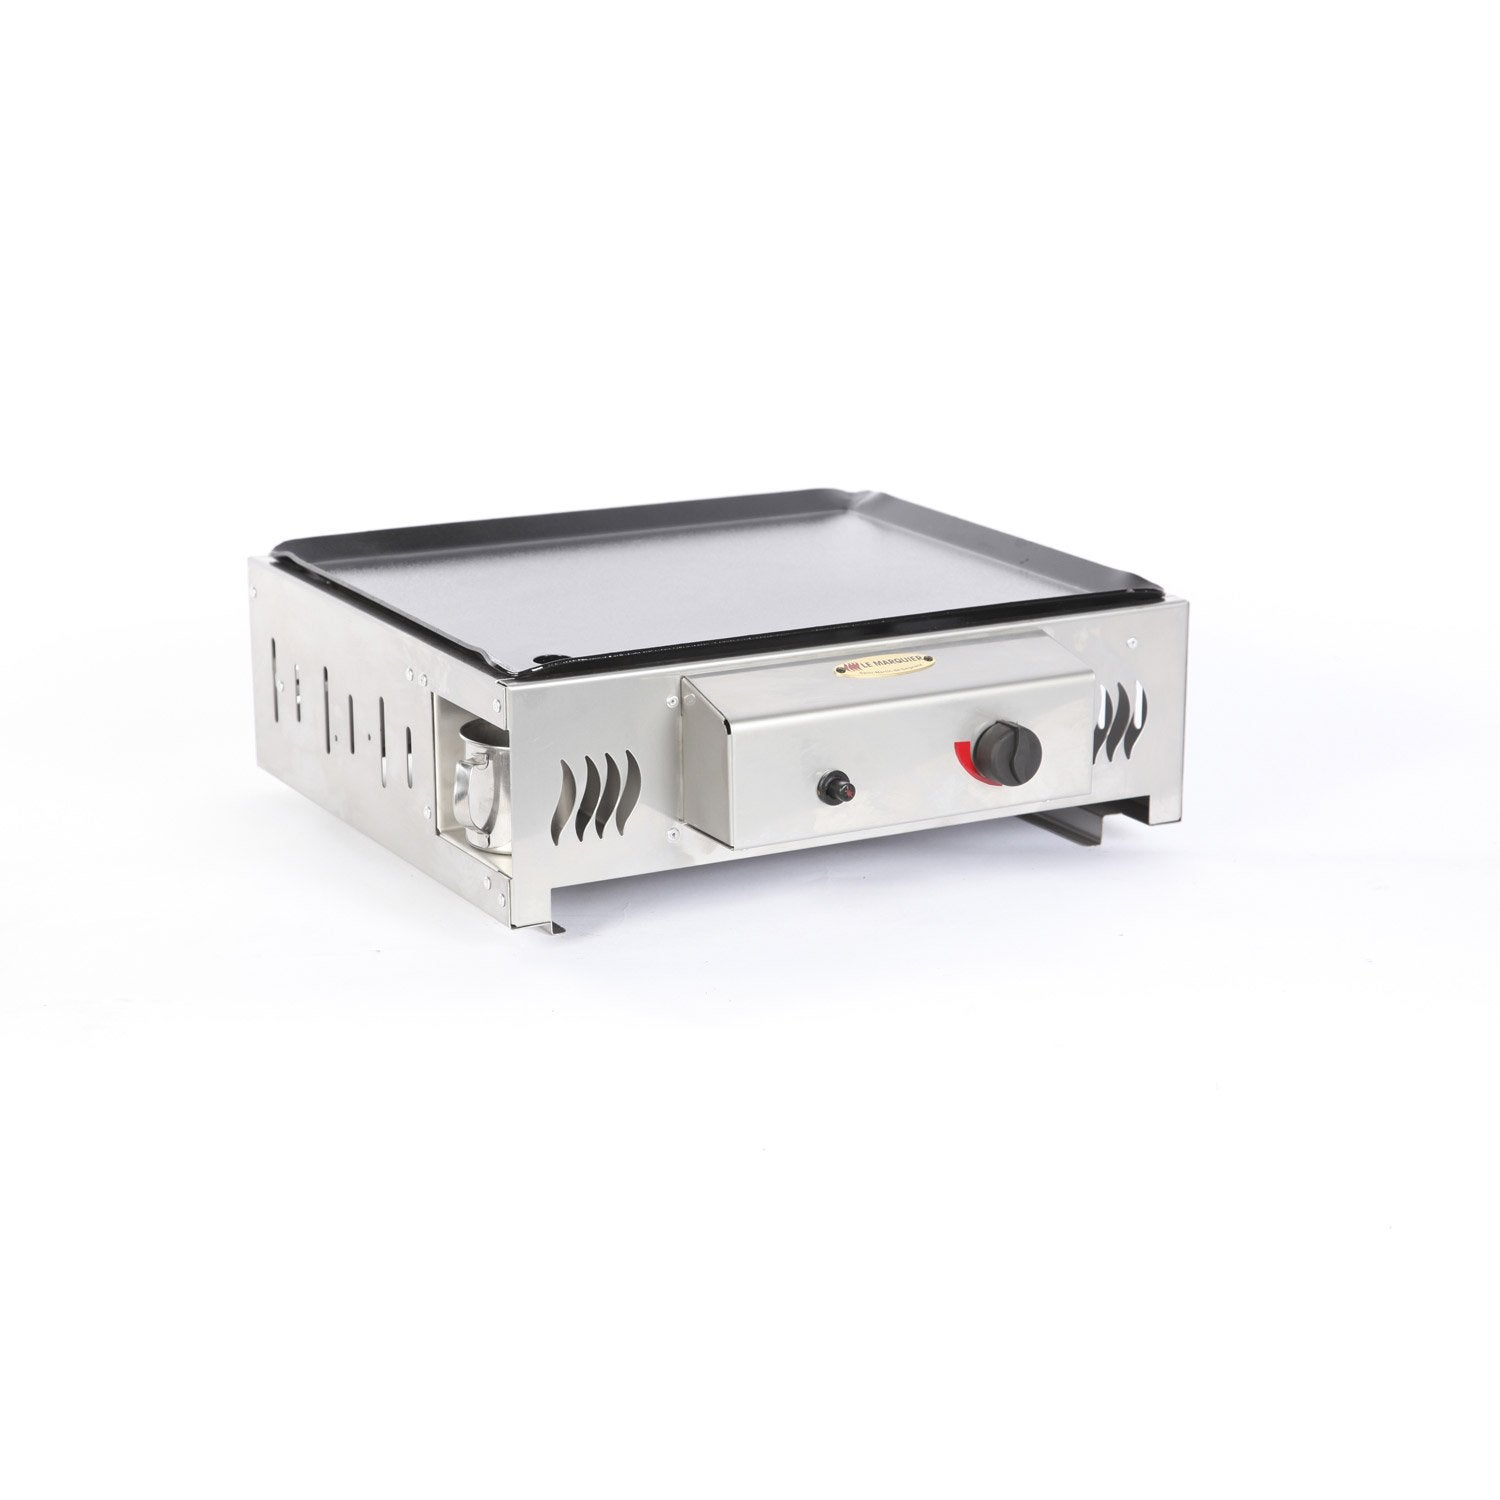 Plancha le marquier inox table roulante inox ferm pour plancha forge adour with plancha le - Leroy merlin plancha ...